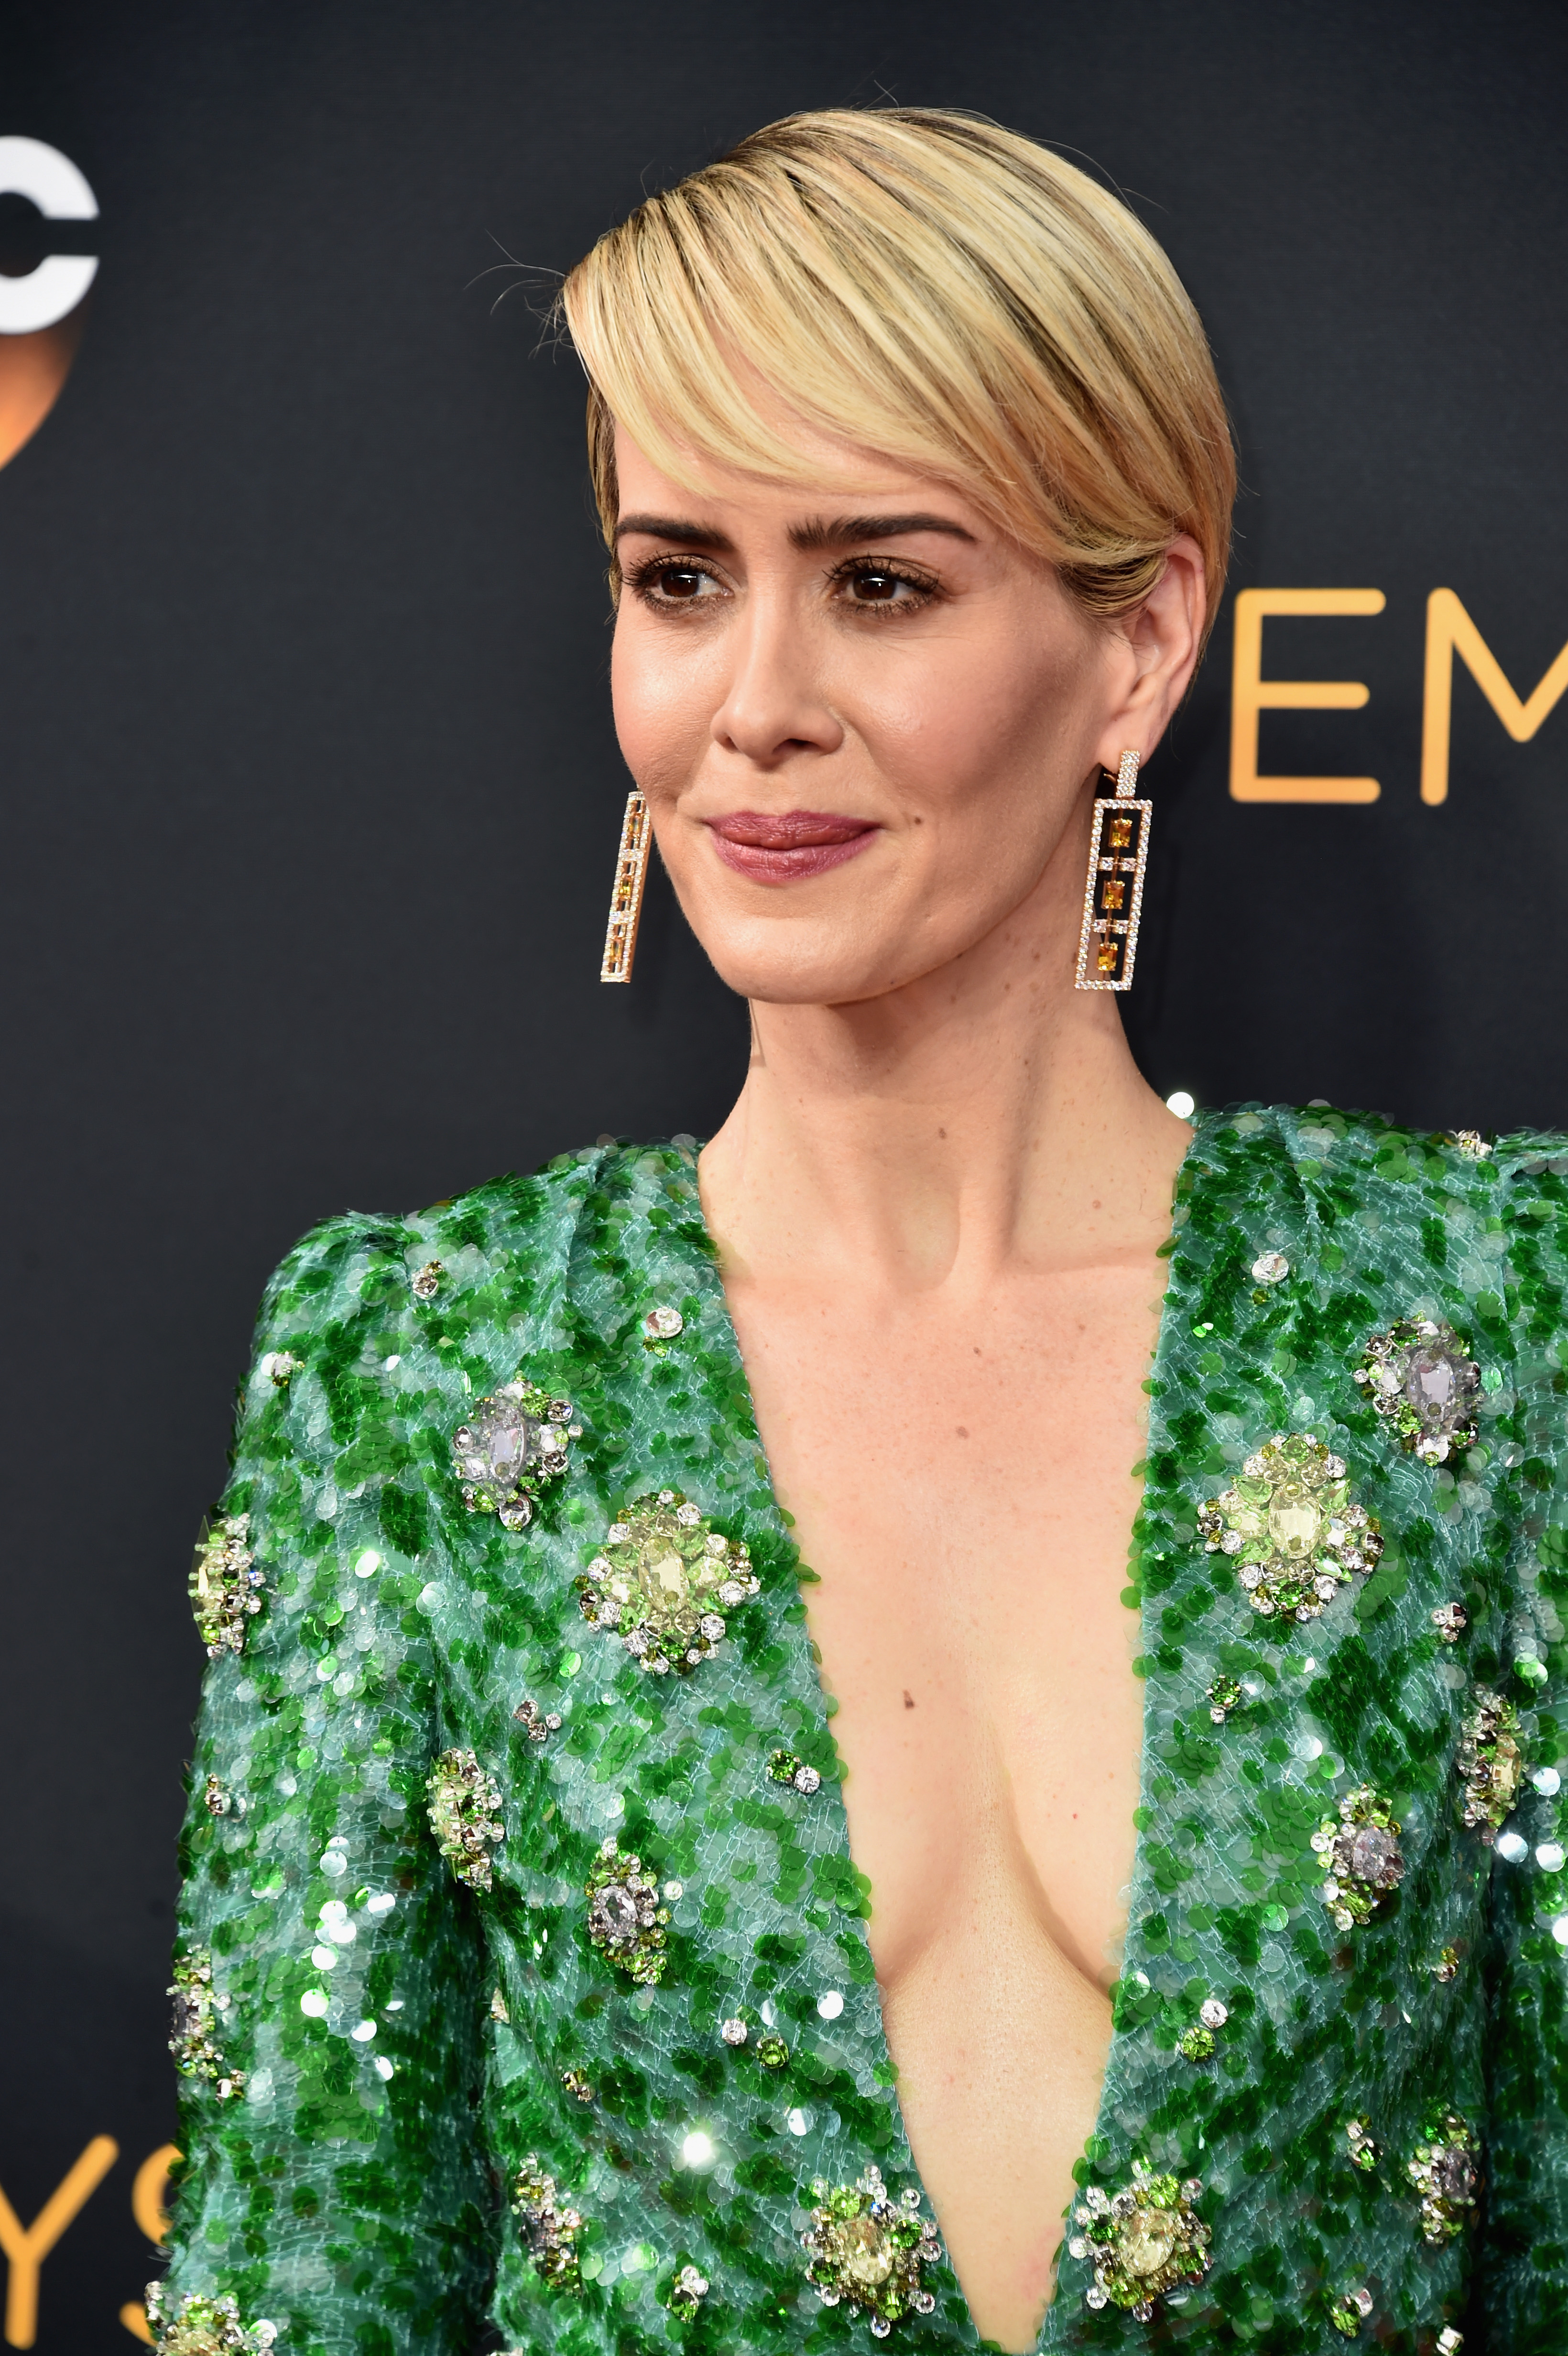 LOS ANGELES, CA - SEPTEMBER 18: Actress Sarah Paulson attends the 68th Annual Primetime Emmy Awards at Microsoft Theater on September 18, 2016 in Los Angeles, California. (Photo by Alberto E. Rodriguez/Getty Images)